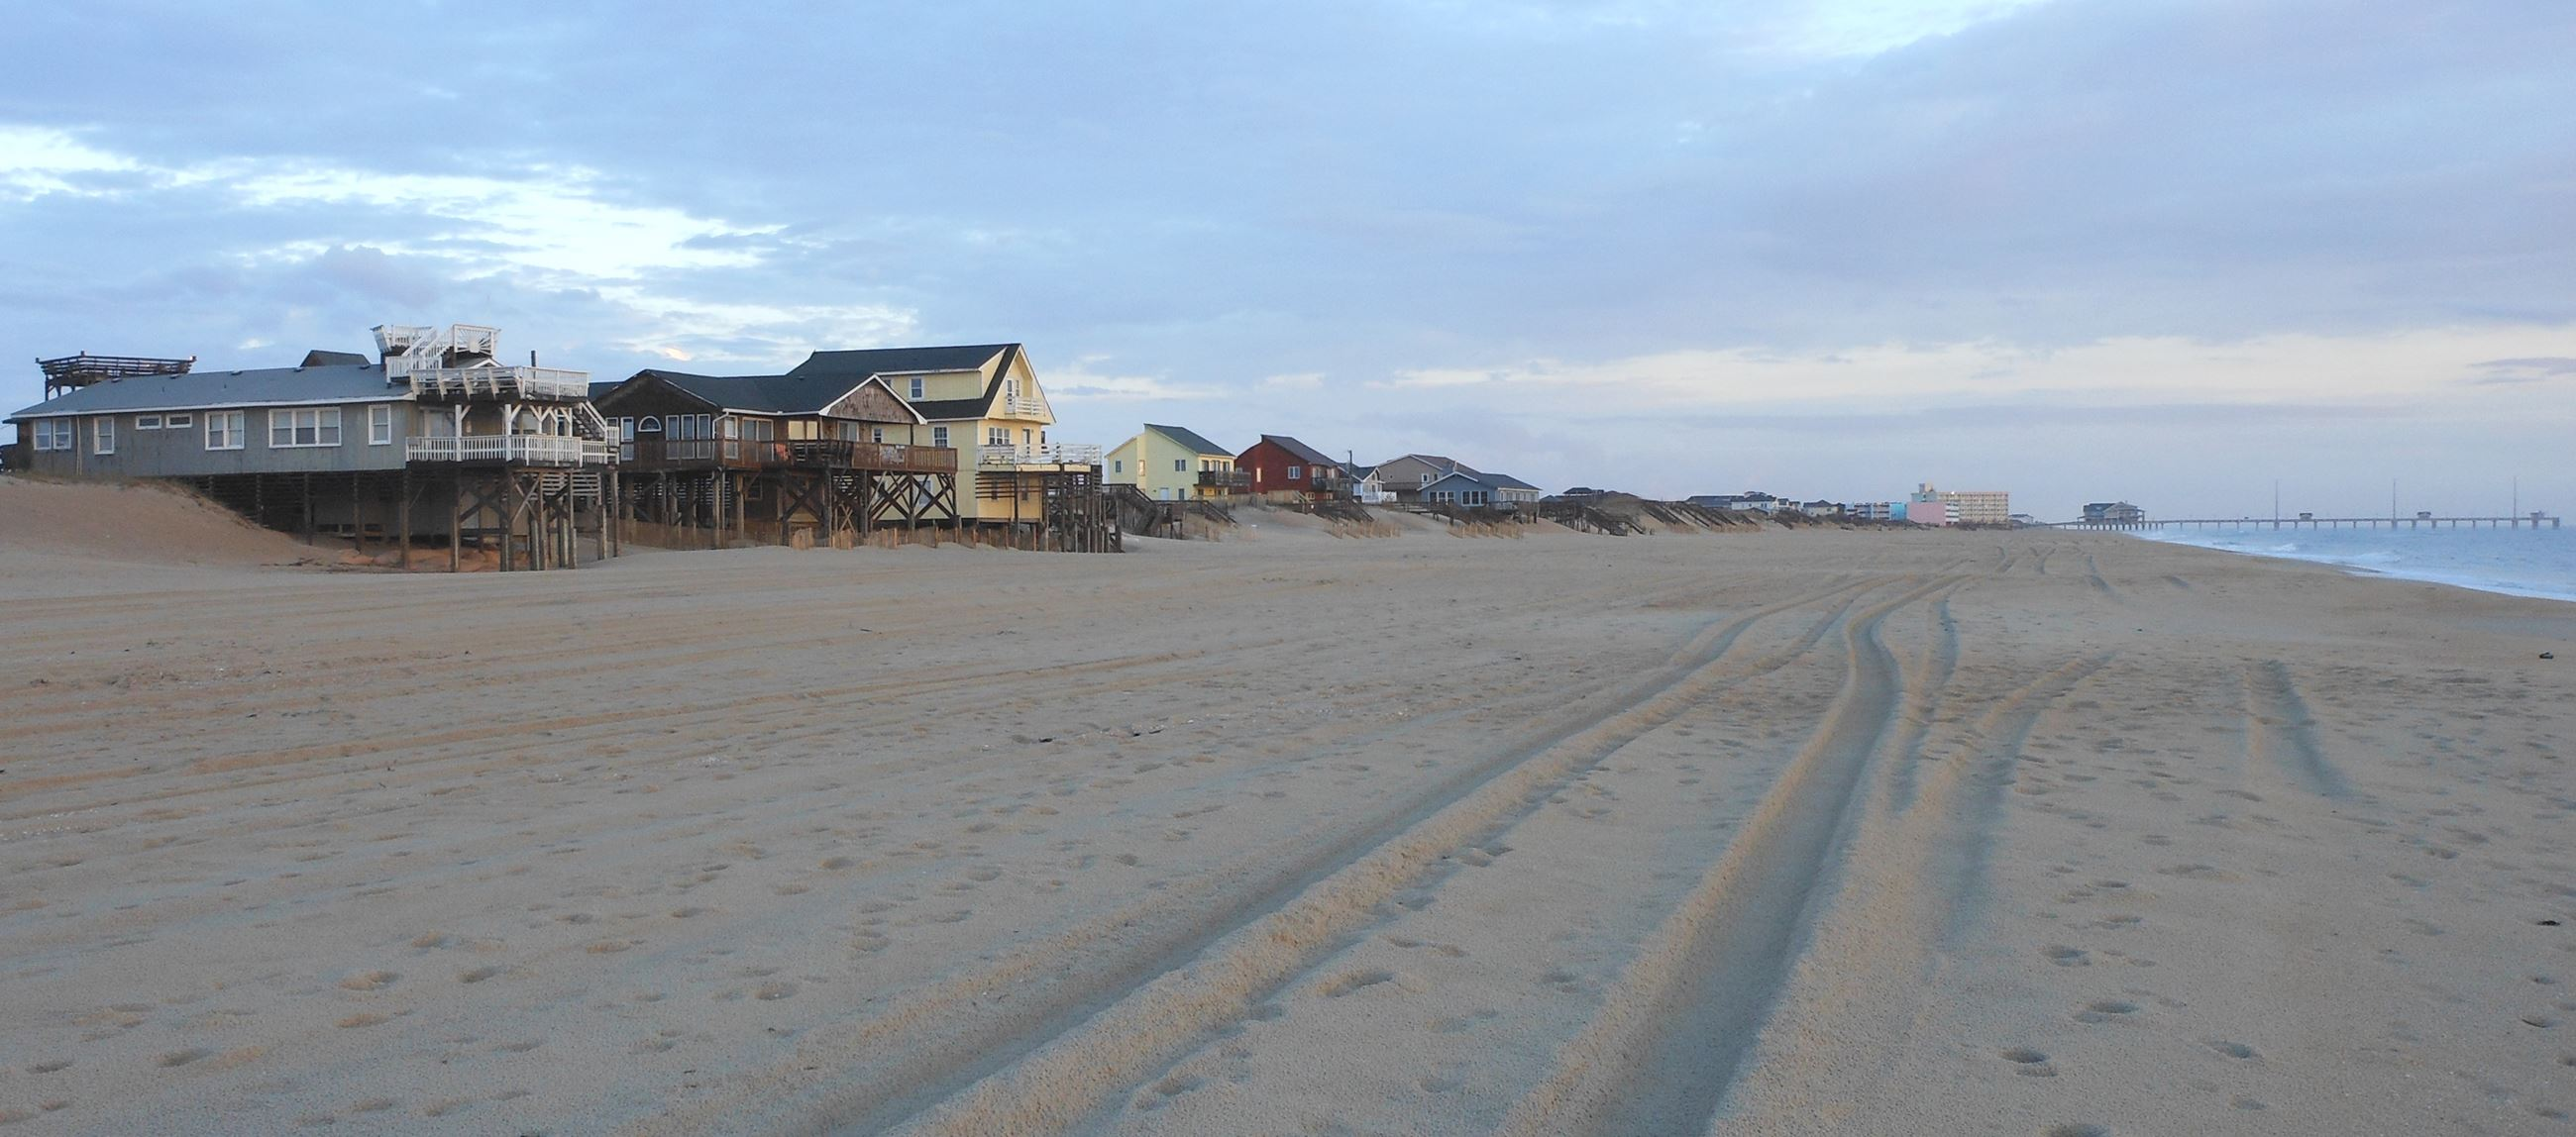 Nags Head's Beach